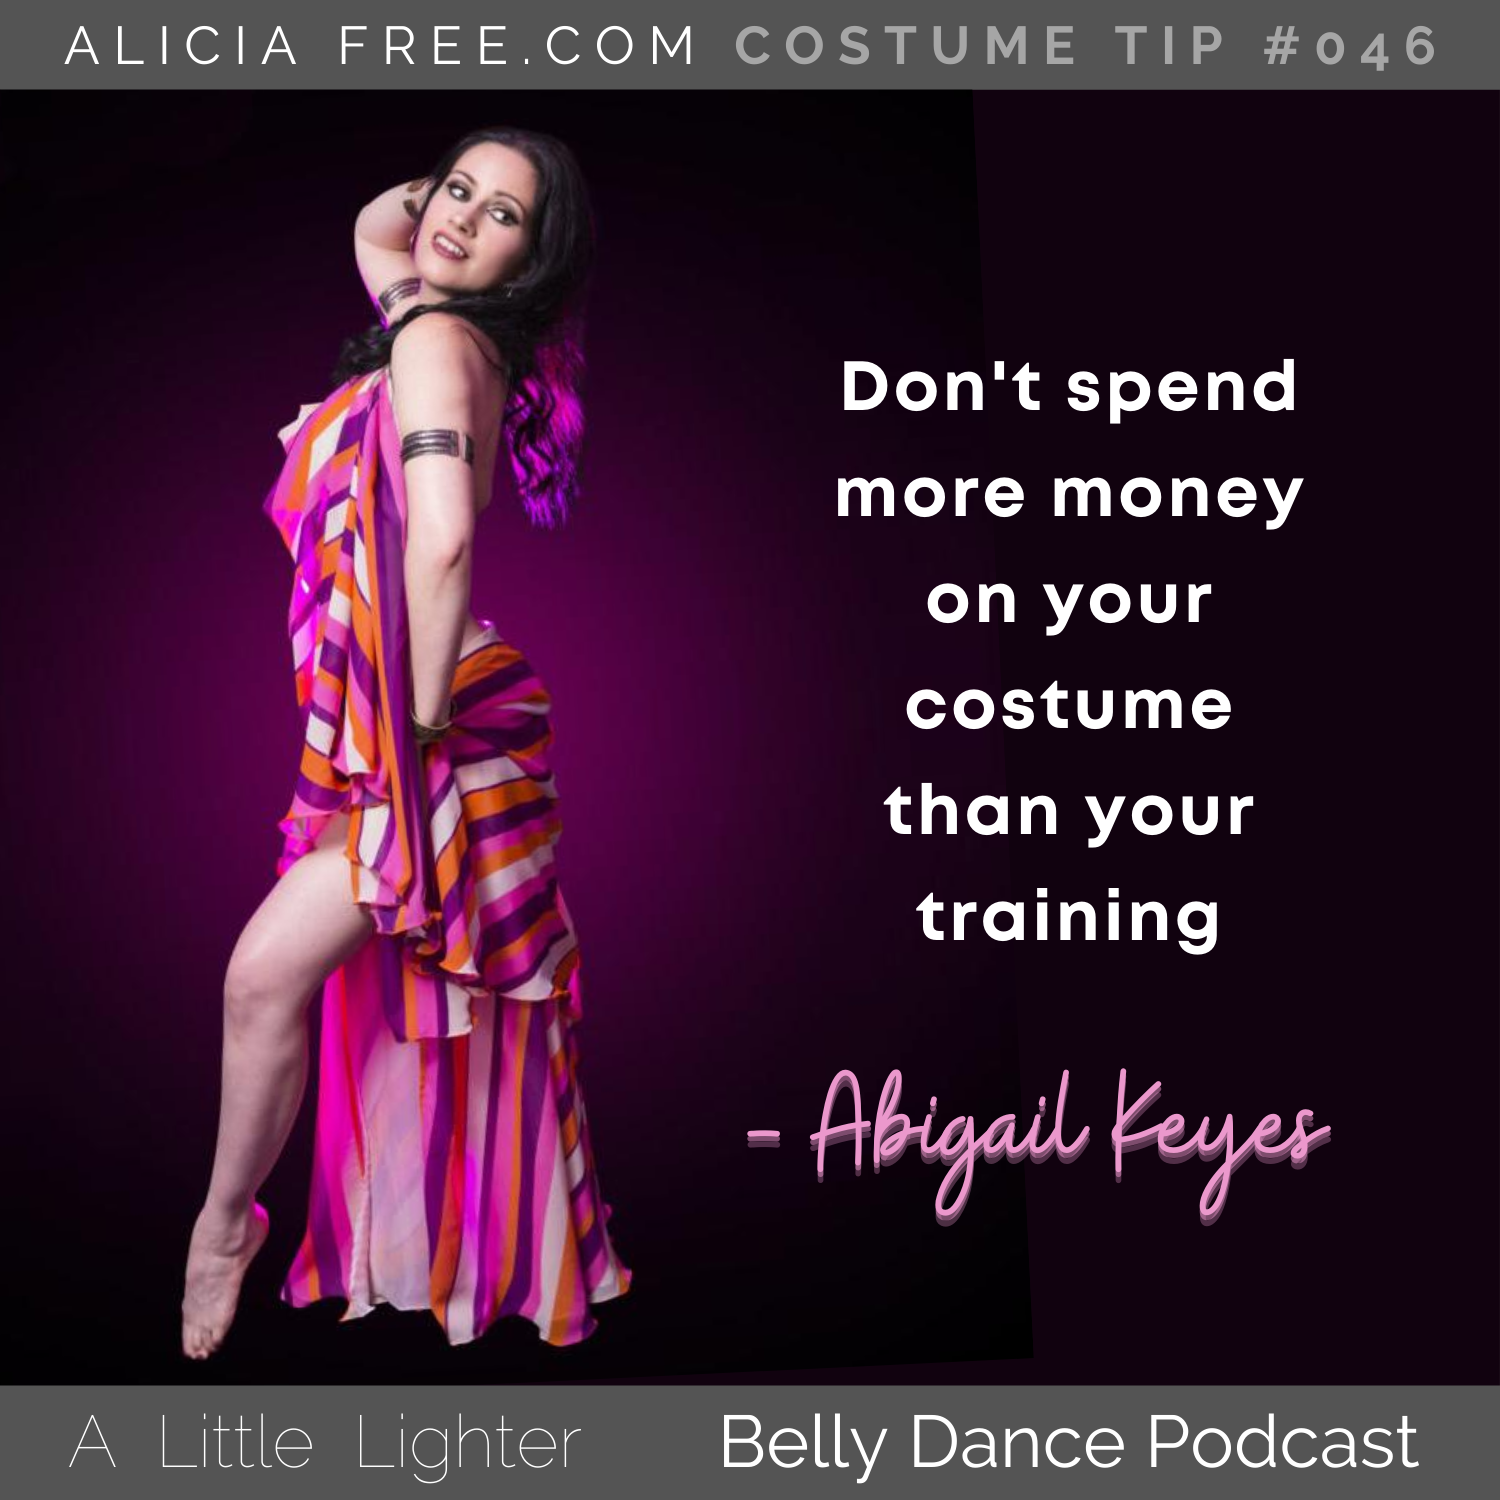 Belly Dance Podcast 046 Costume Tip